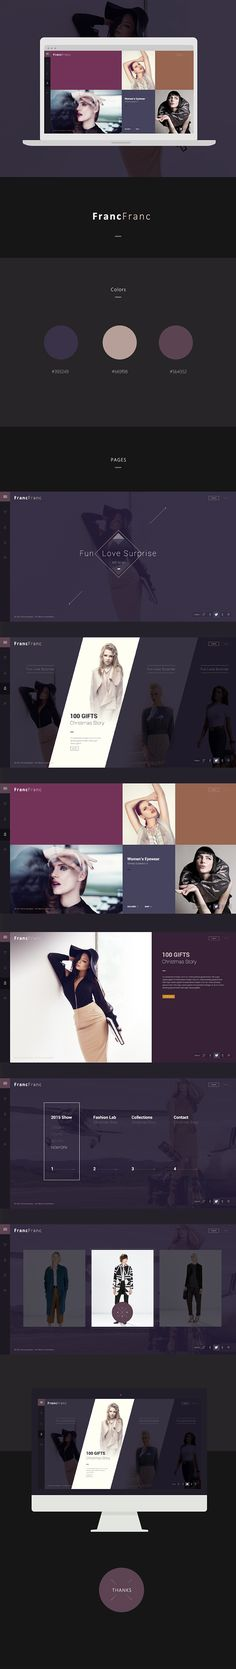 website concept design on Behance - - Lena Ob. - Web und App Design - Desings World